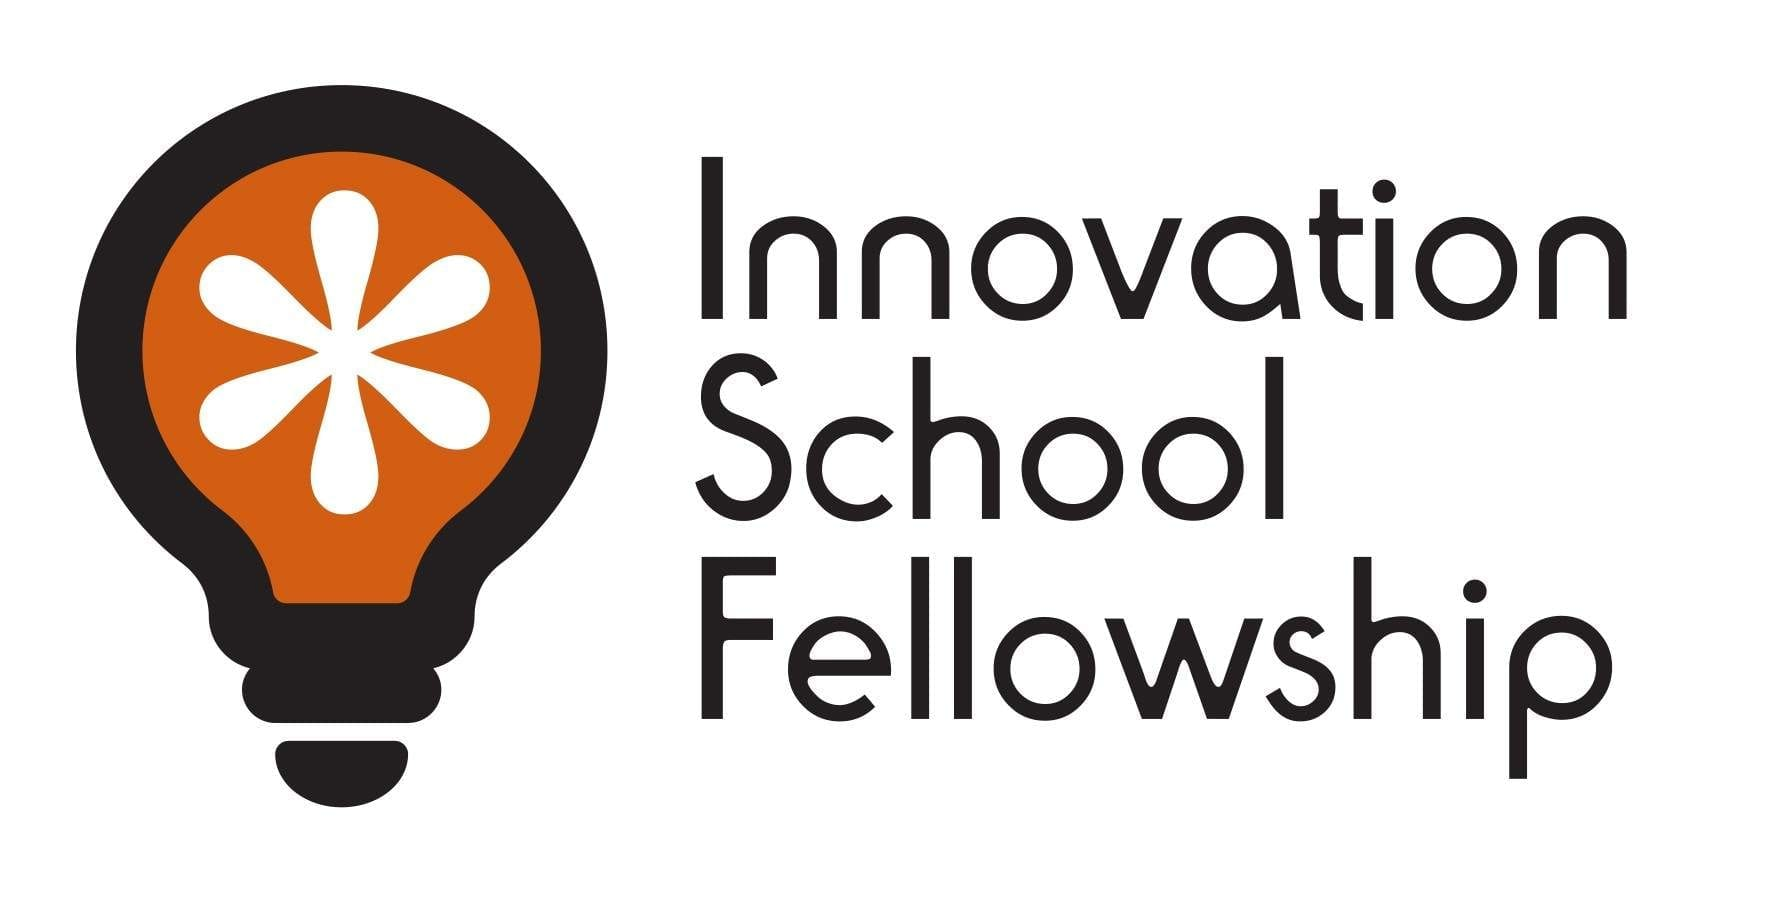 Fully funded Radcliffe Fellowship Program at Harvard University